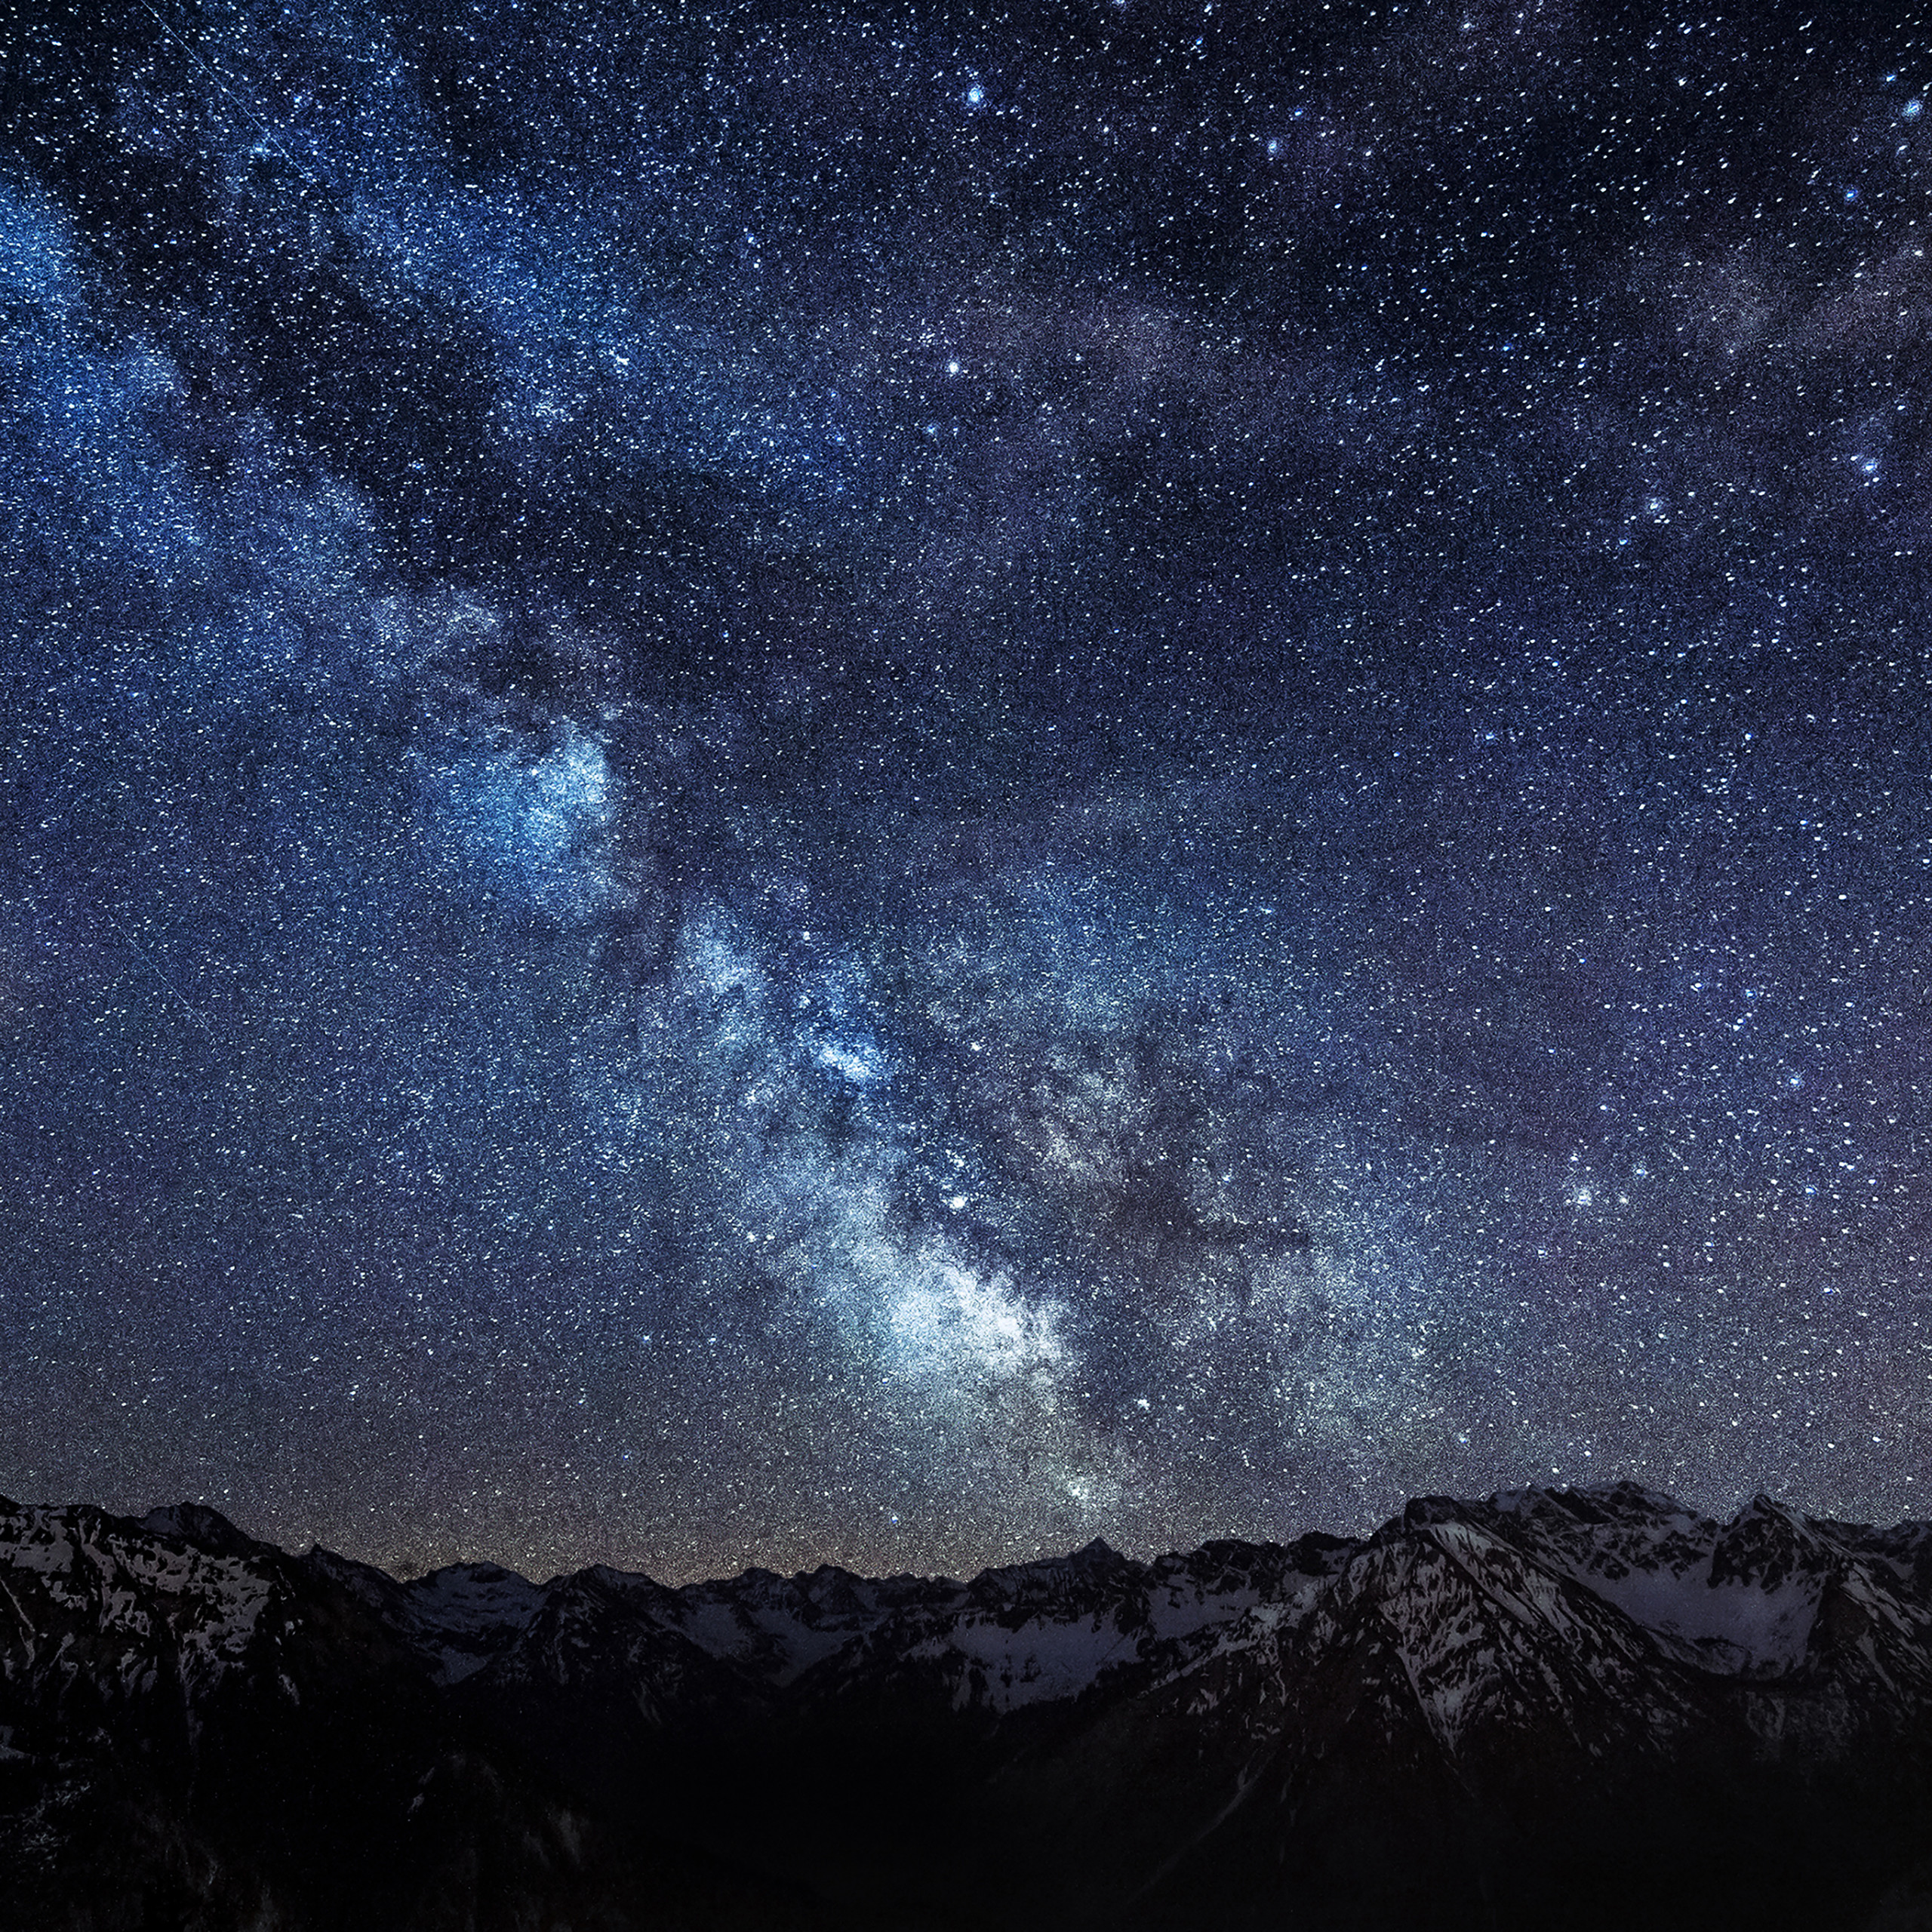 mb55 wallpaper amazing milkyway space mountain